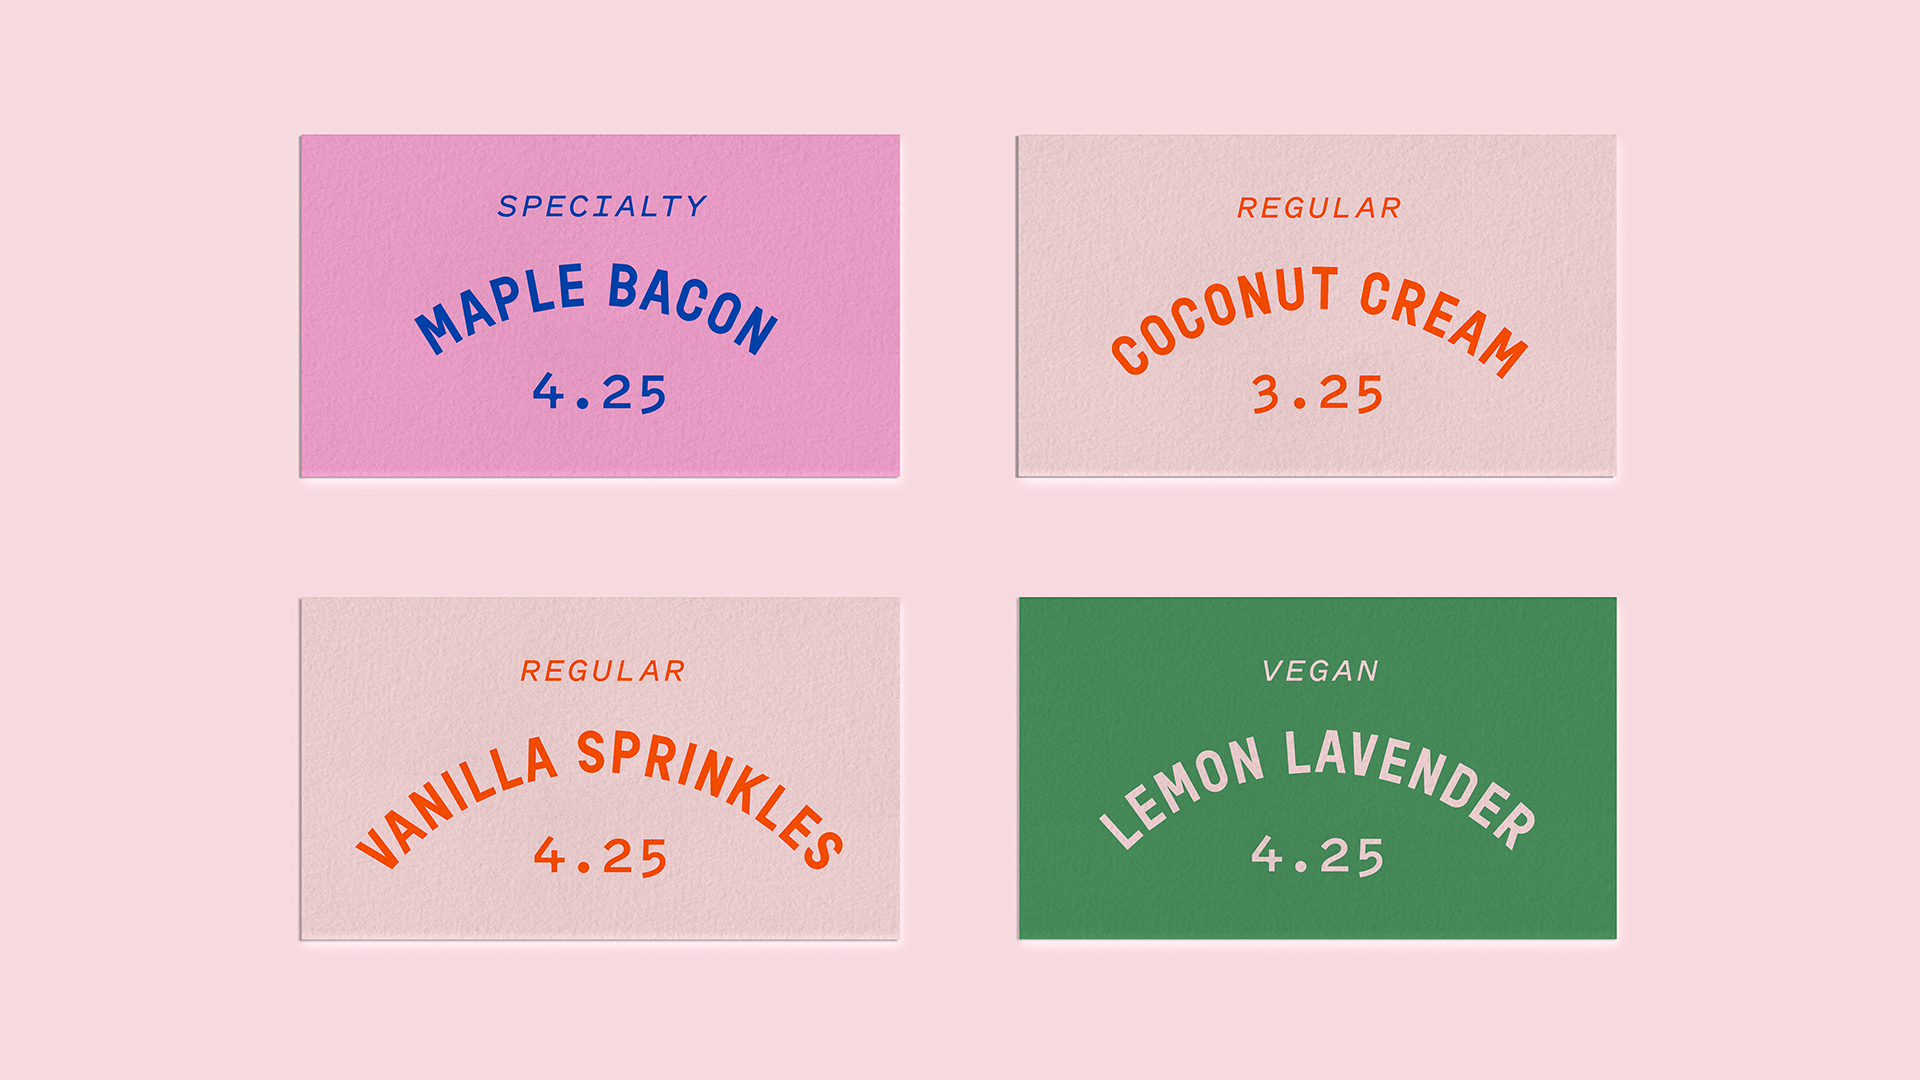 An image of four cards with doughnut names and prices. These cards would be displayed in a doughnut display. The types listed are vanilla sprinkles, lemon lavender, coconut cream and maple bacon. The type is on a circular path with the price below and the cards are colour coordinated based on vegan, regular and specialty doughnuts